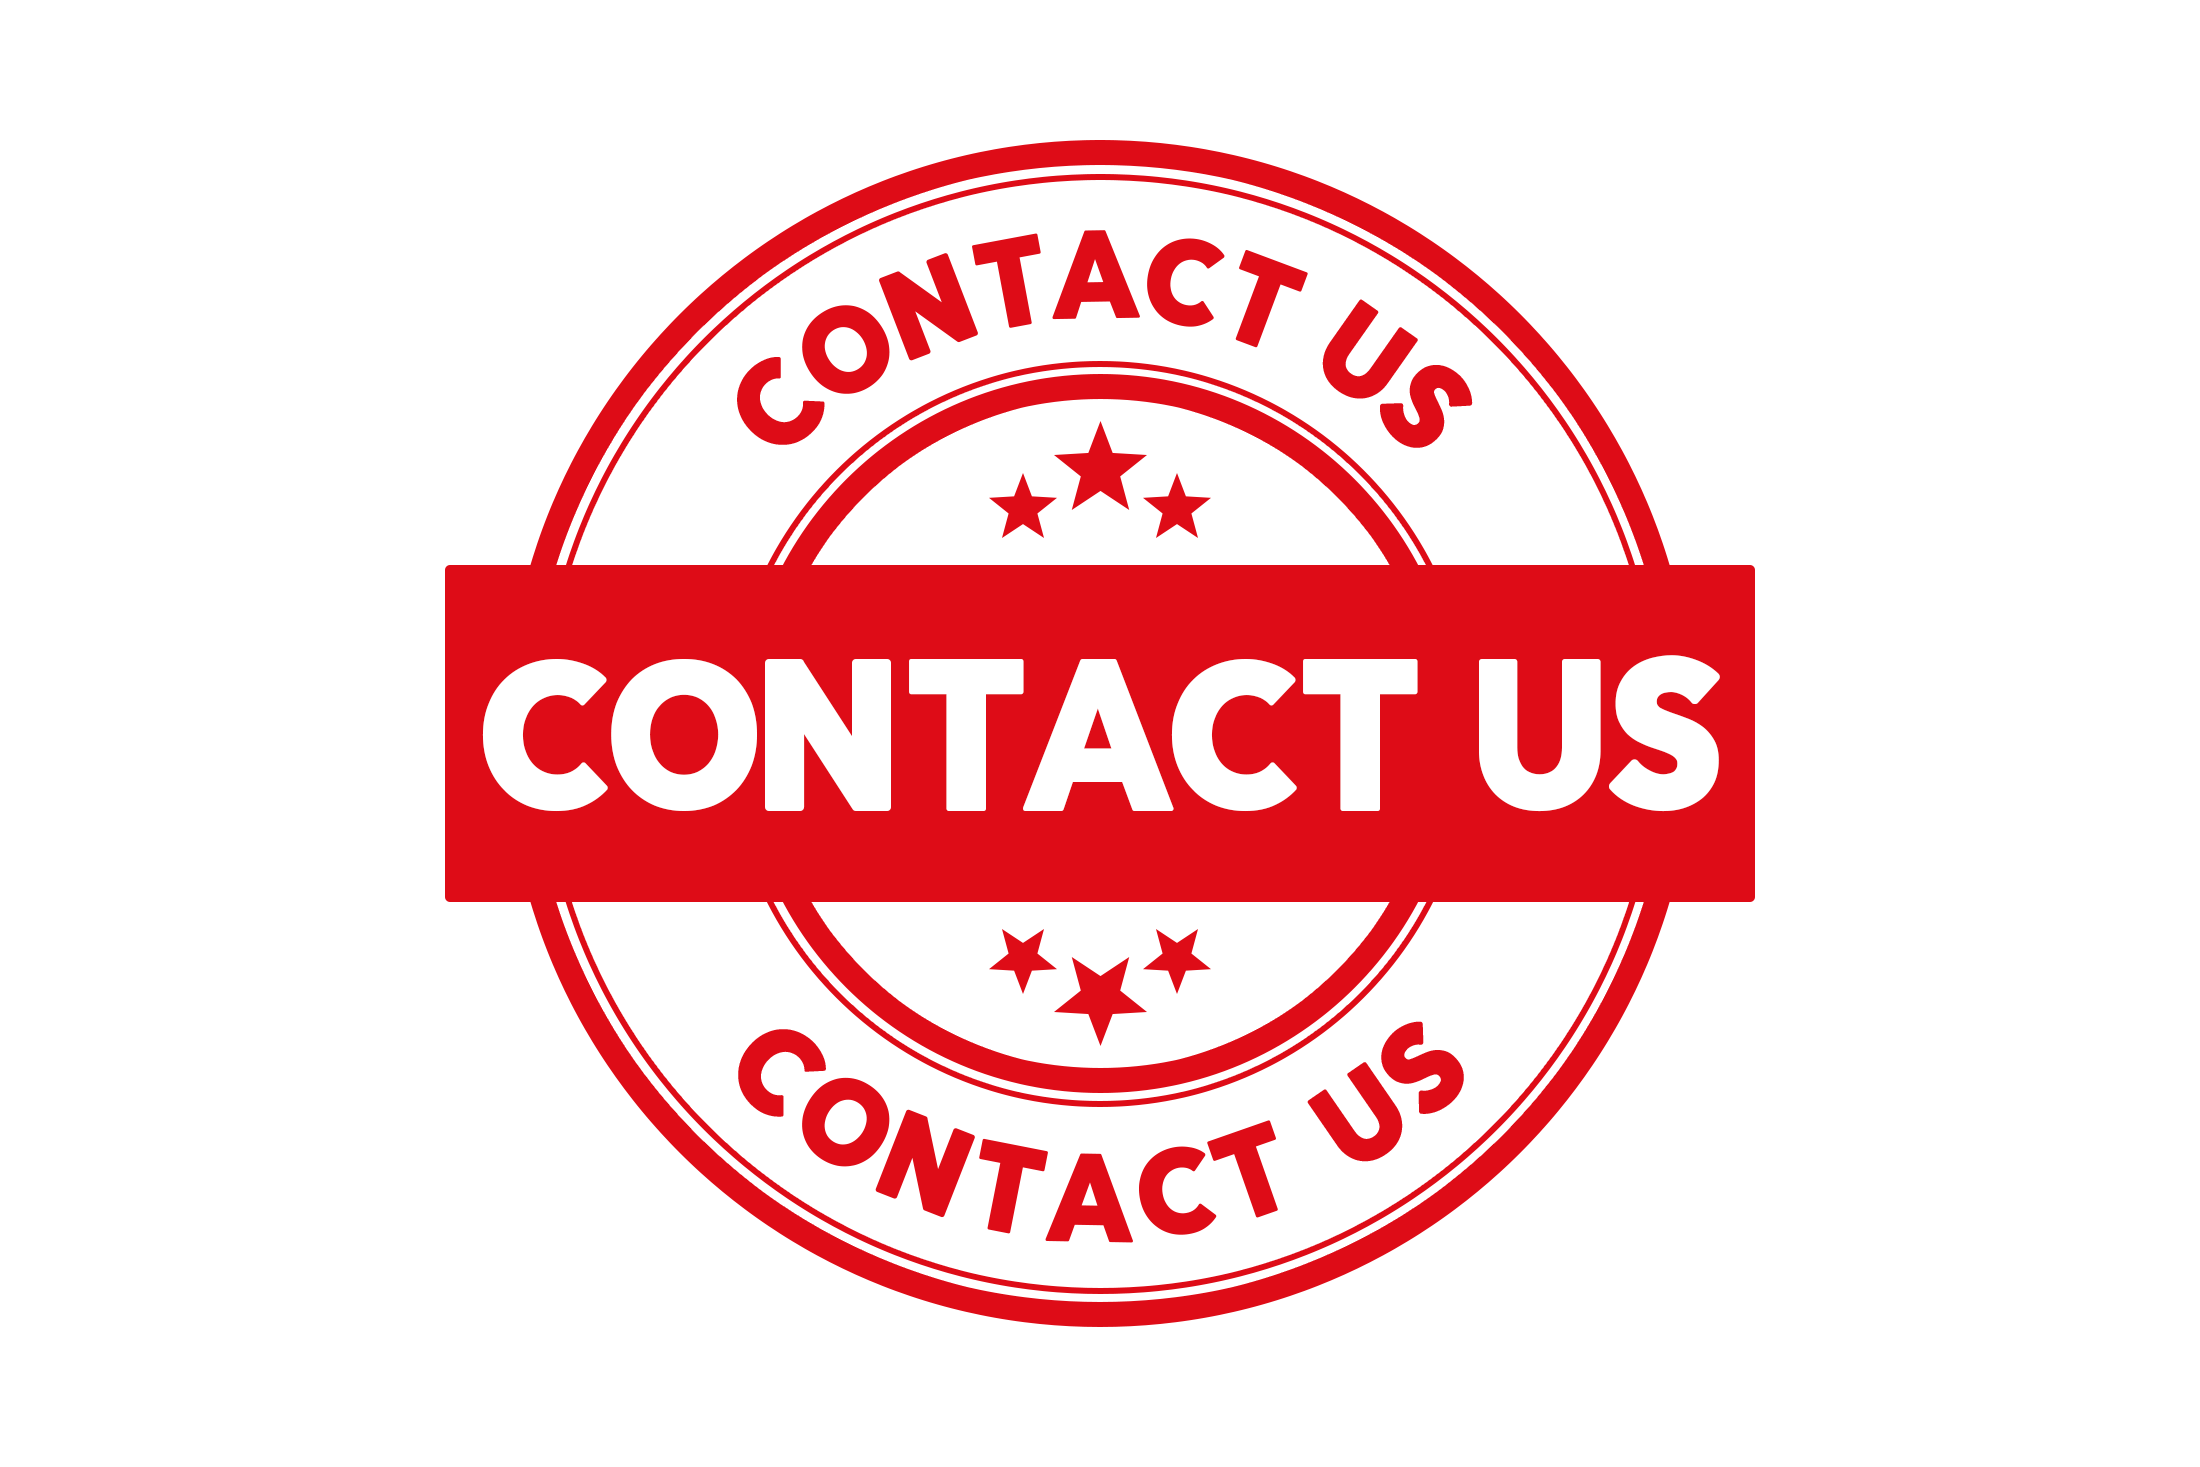 Round contact us stamp PSD